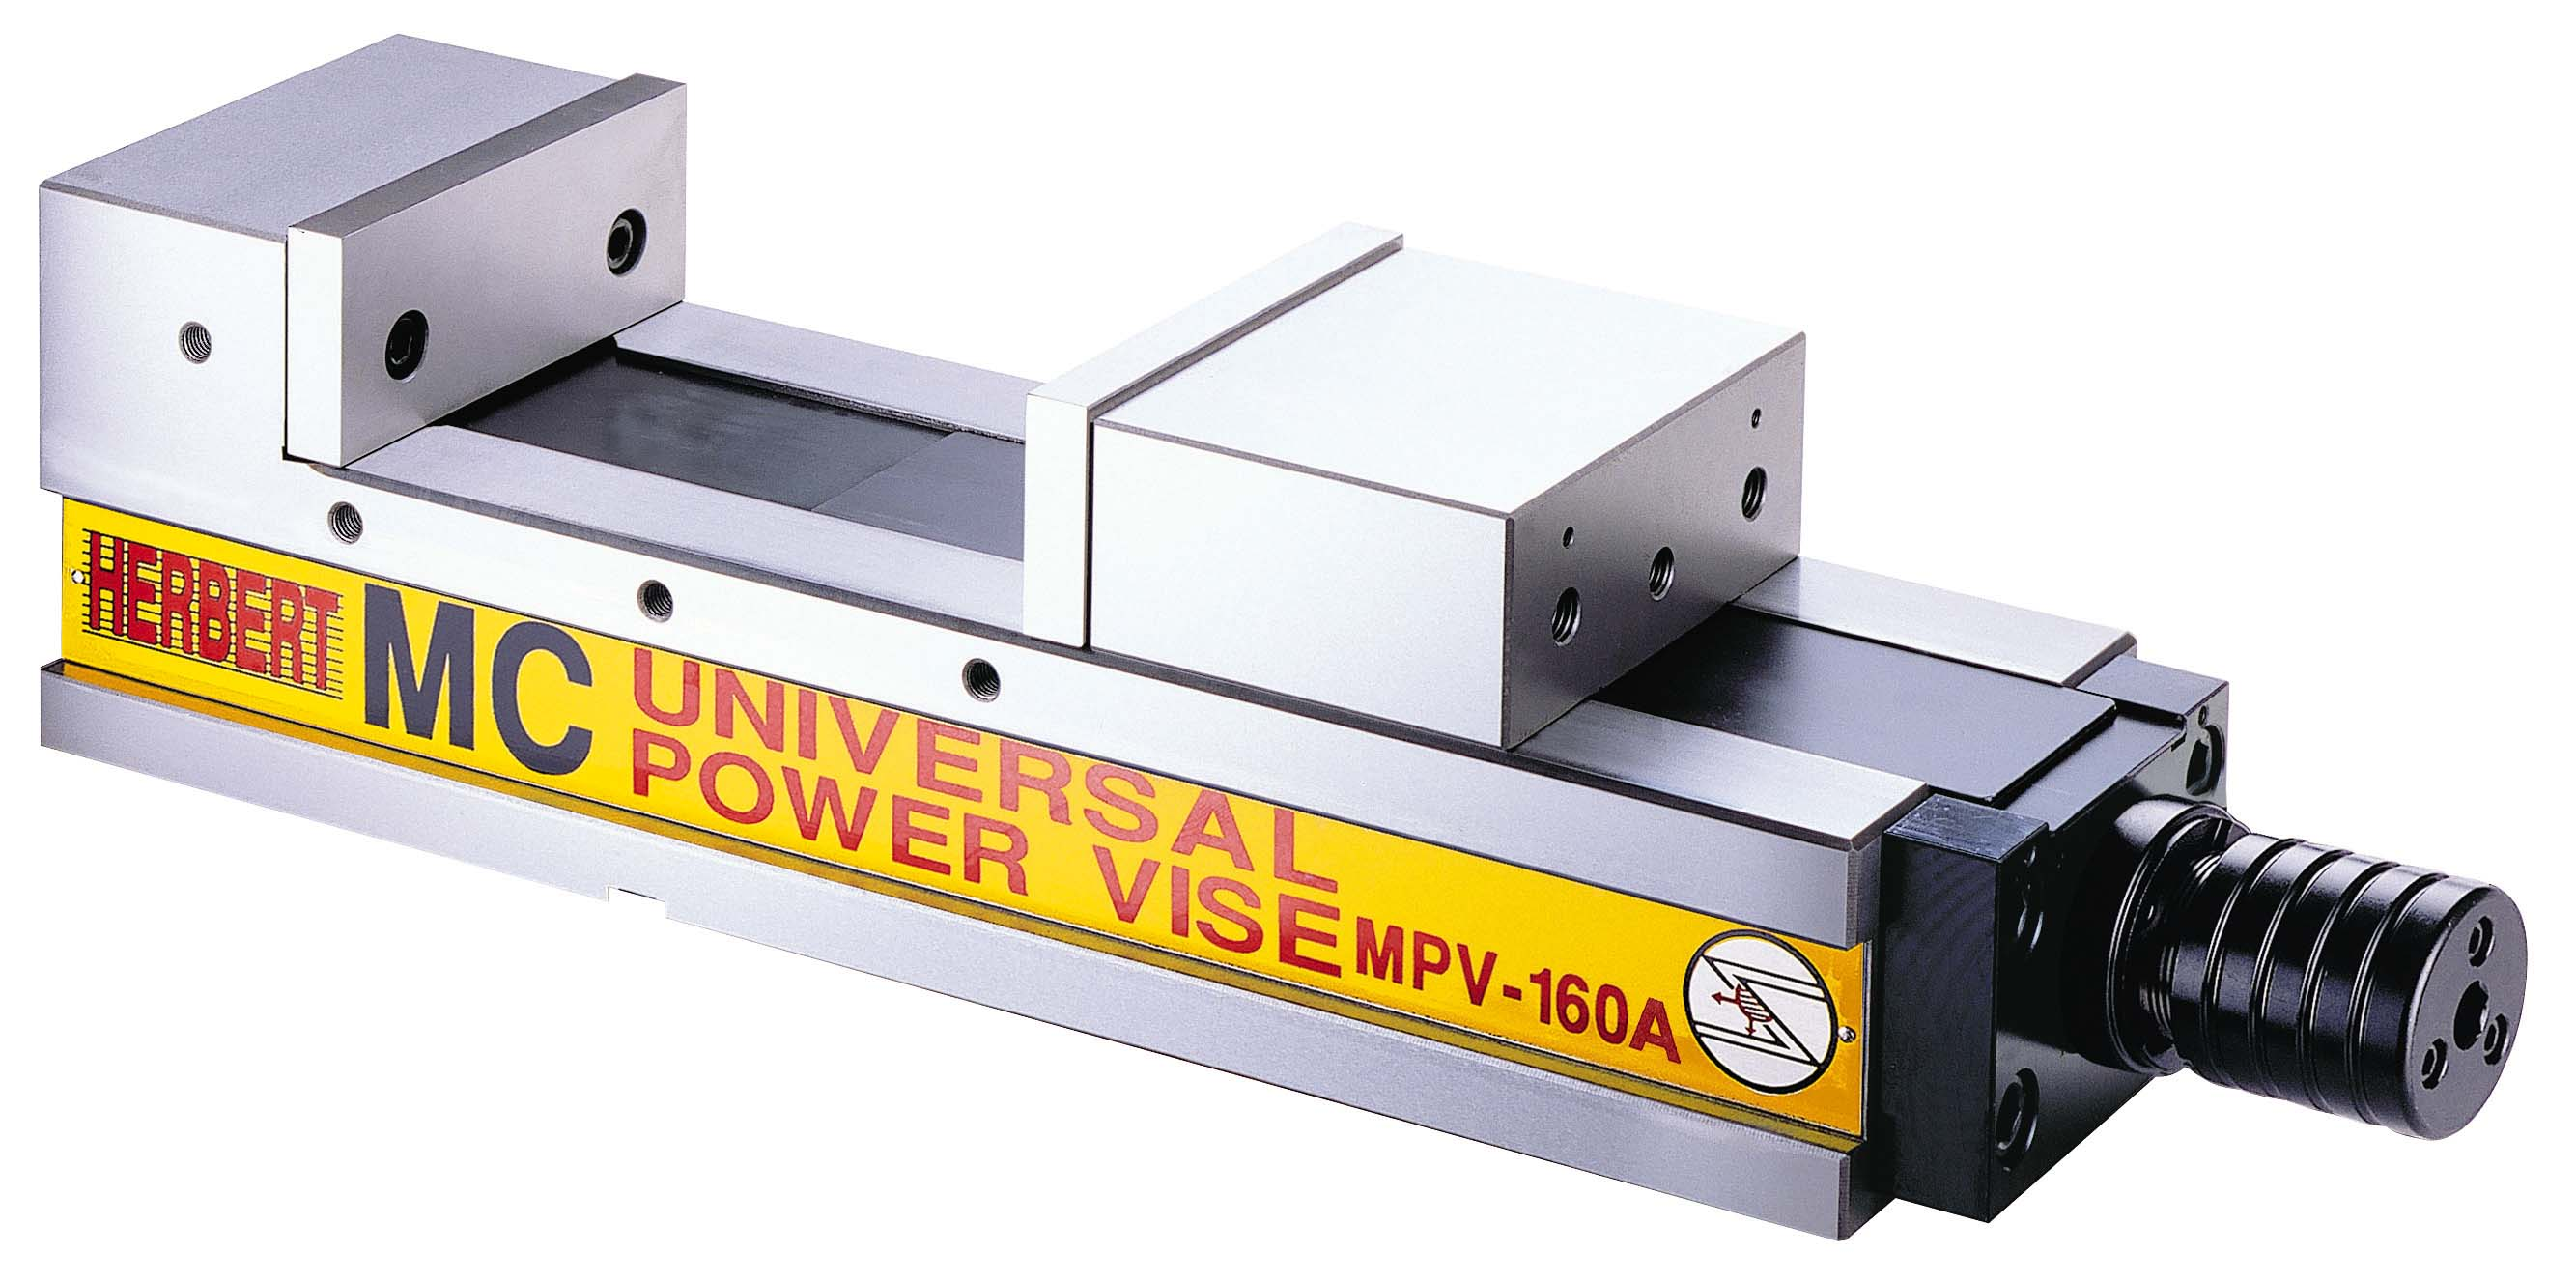 MC Super Open Type Vise-MPV